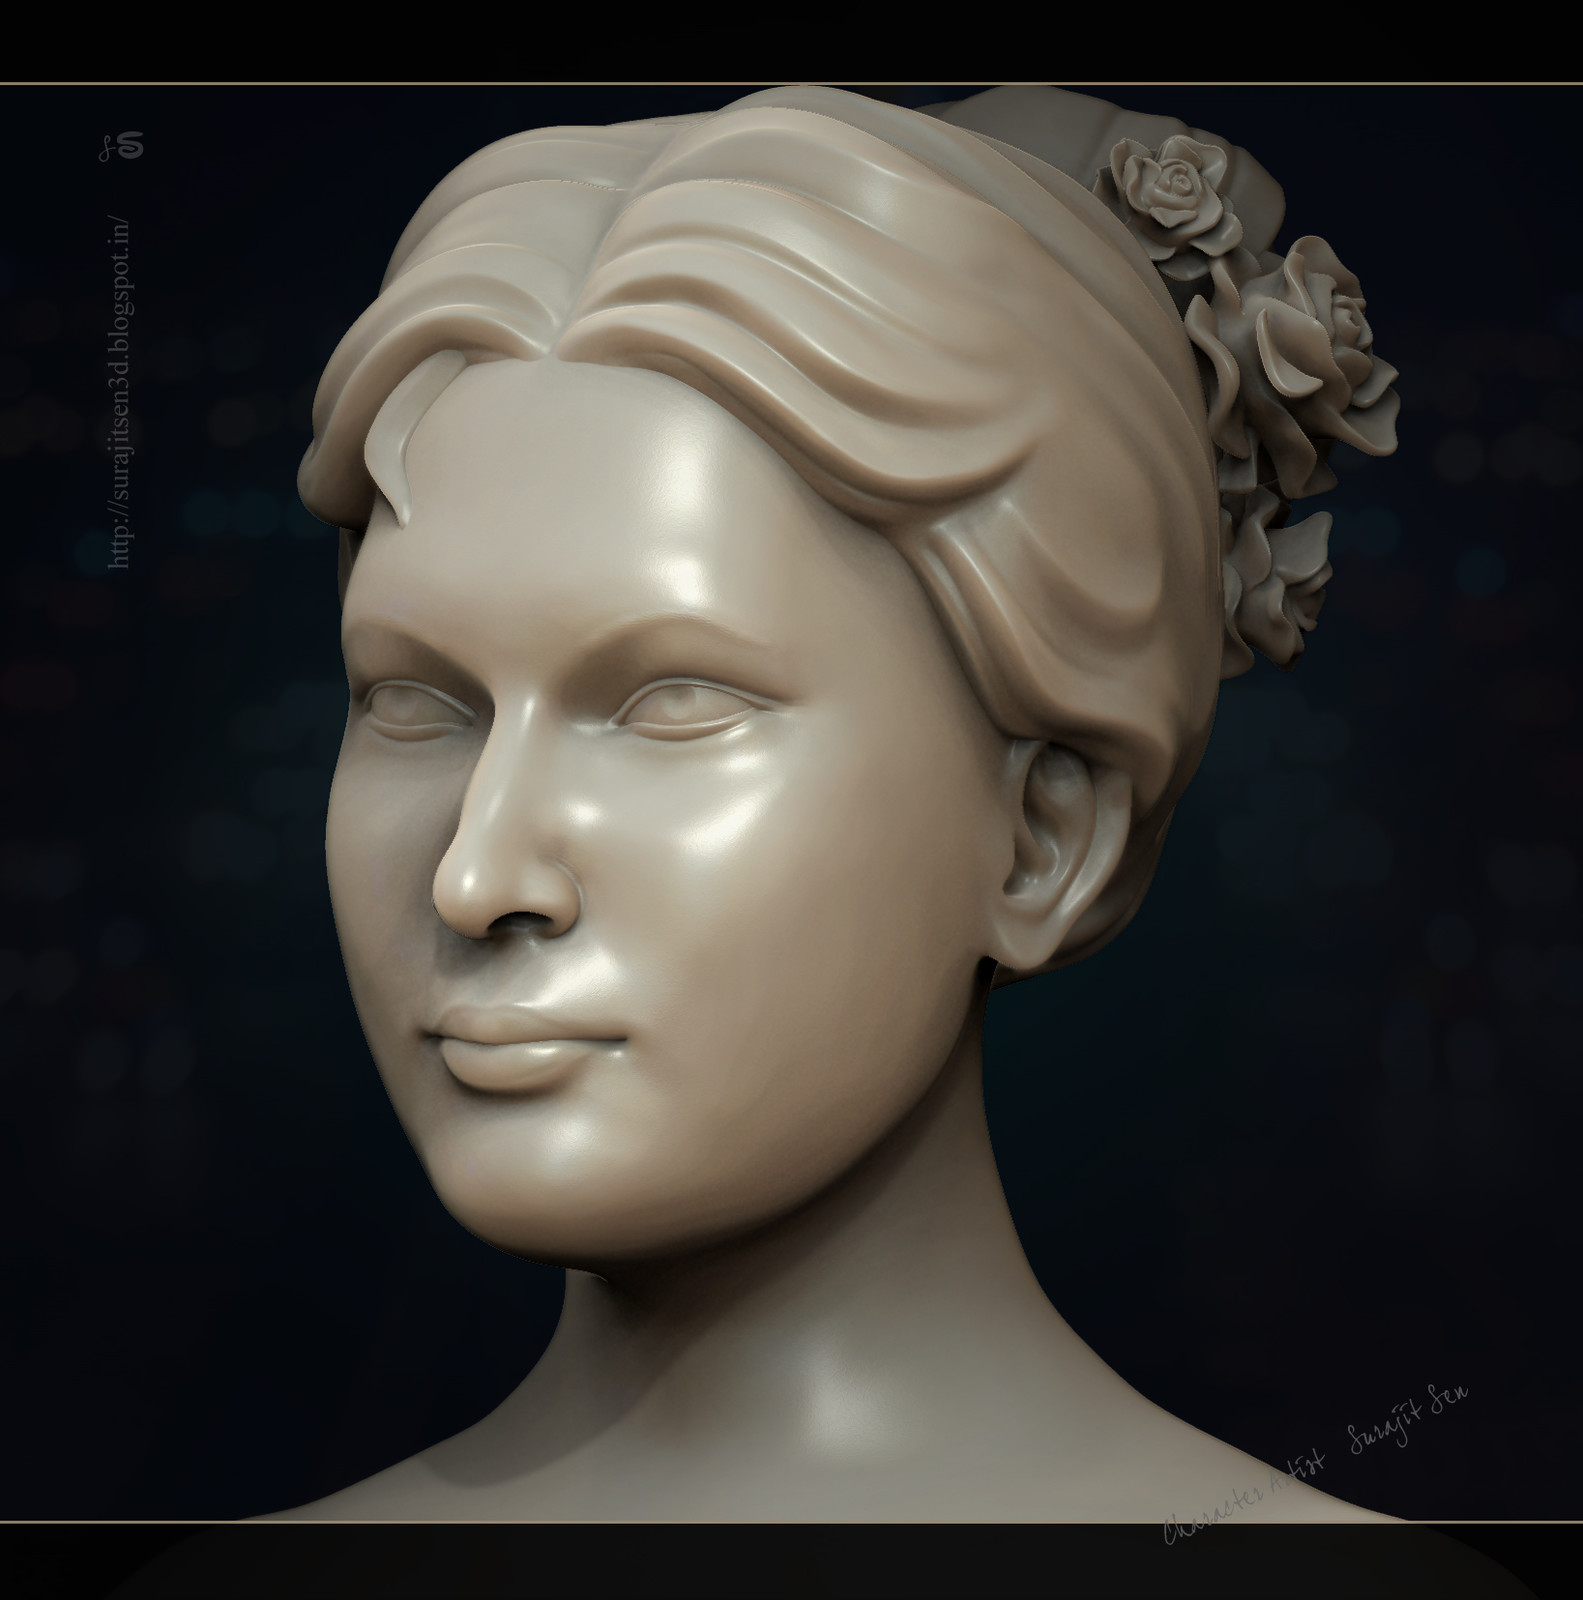 My recent R&D work ....Stone finish Female Sculpt.... Wish to share a snap .....:)